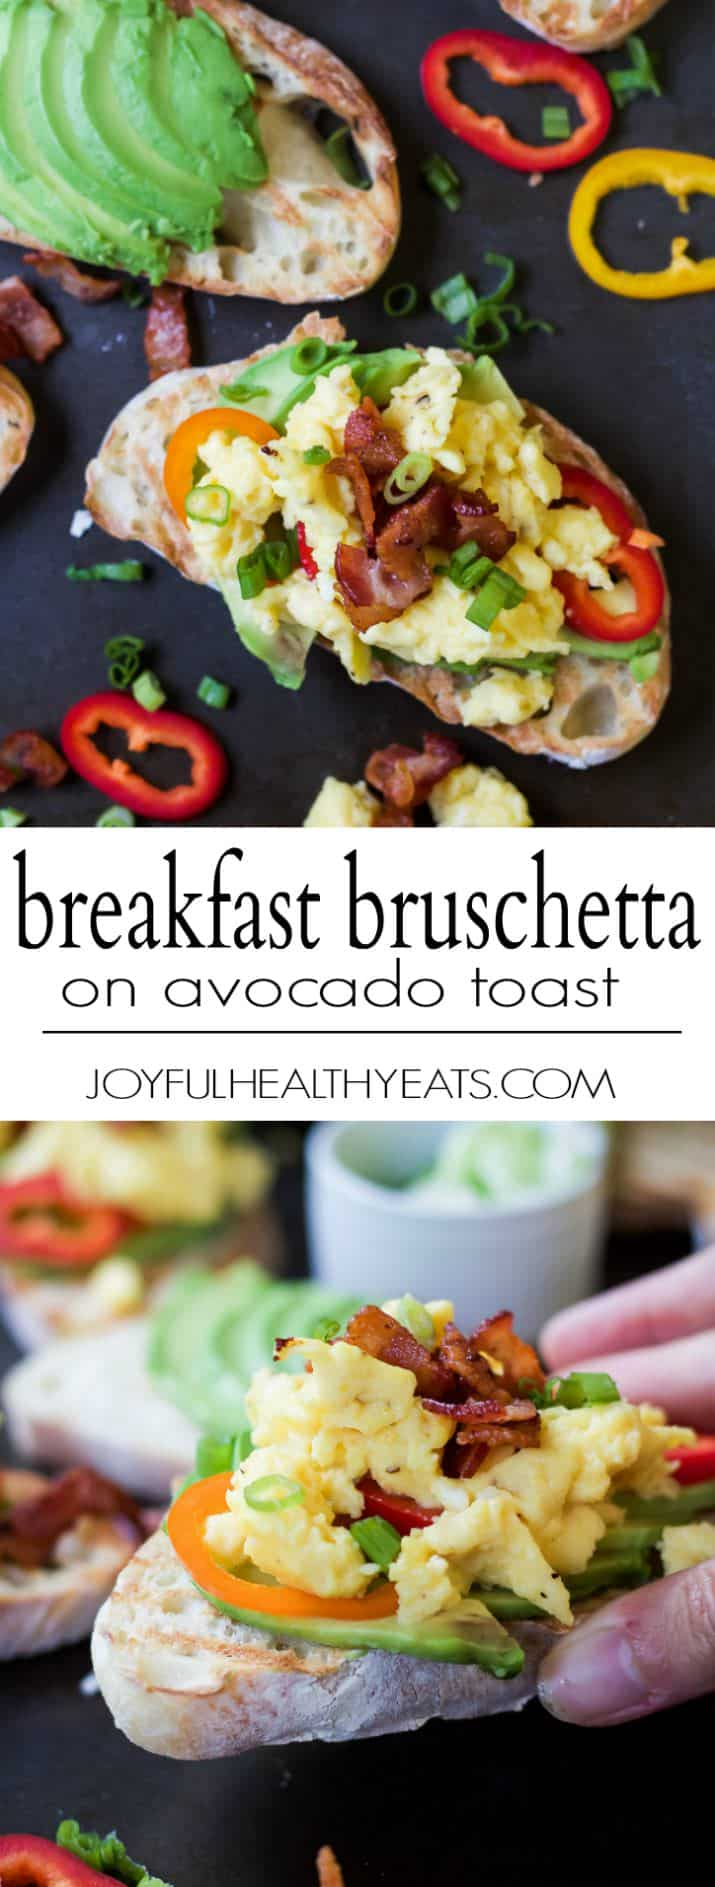 A Collage of Two Images of Breakfast Bruschetta on Avocado Toast